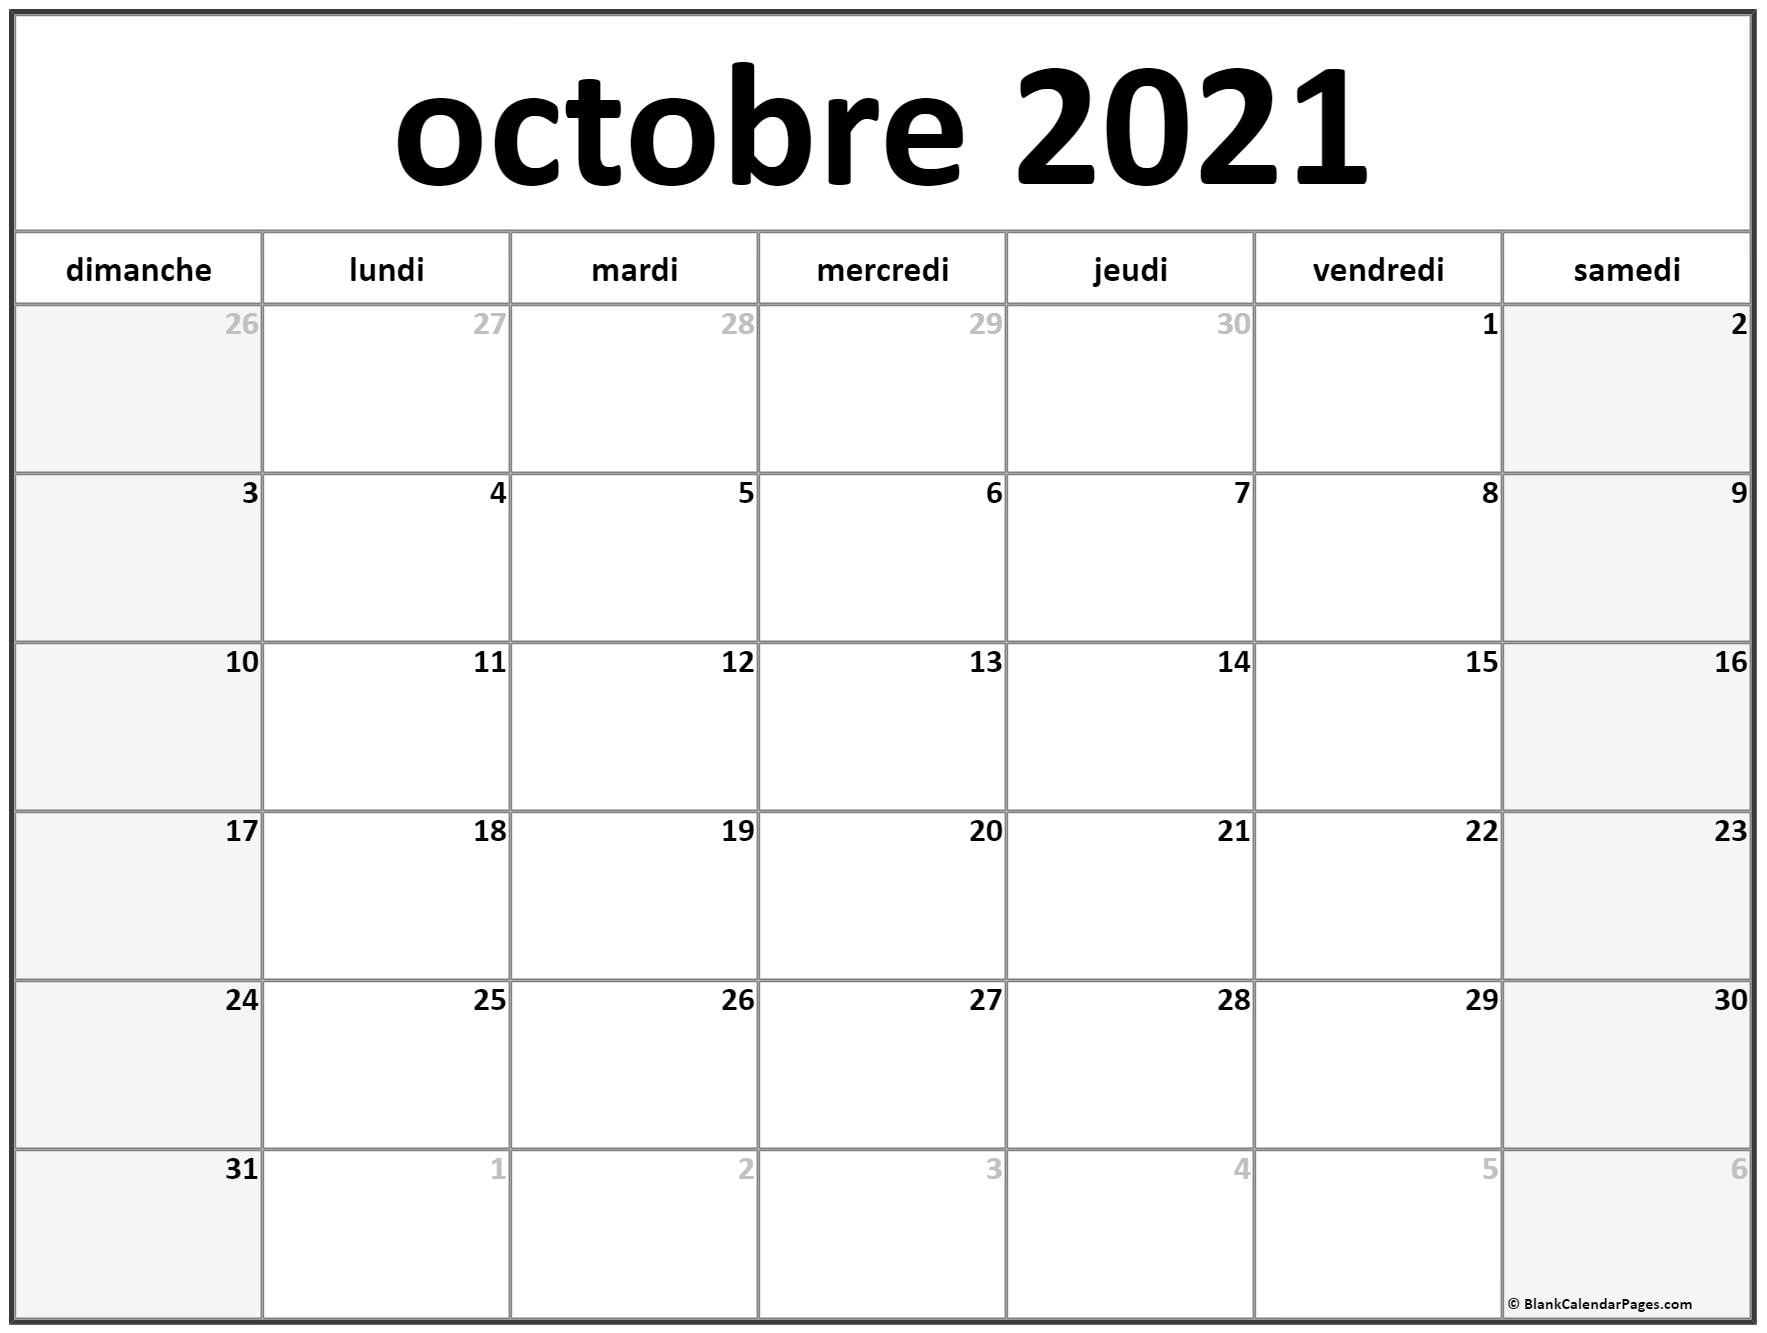 octobre 2021 calendrier imprimable